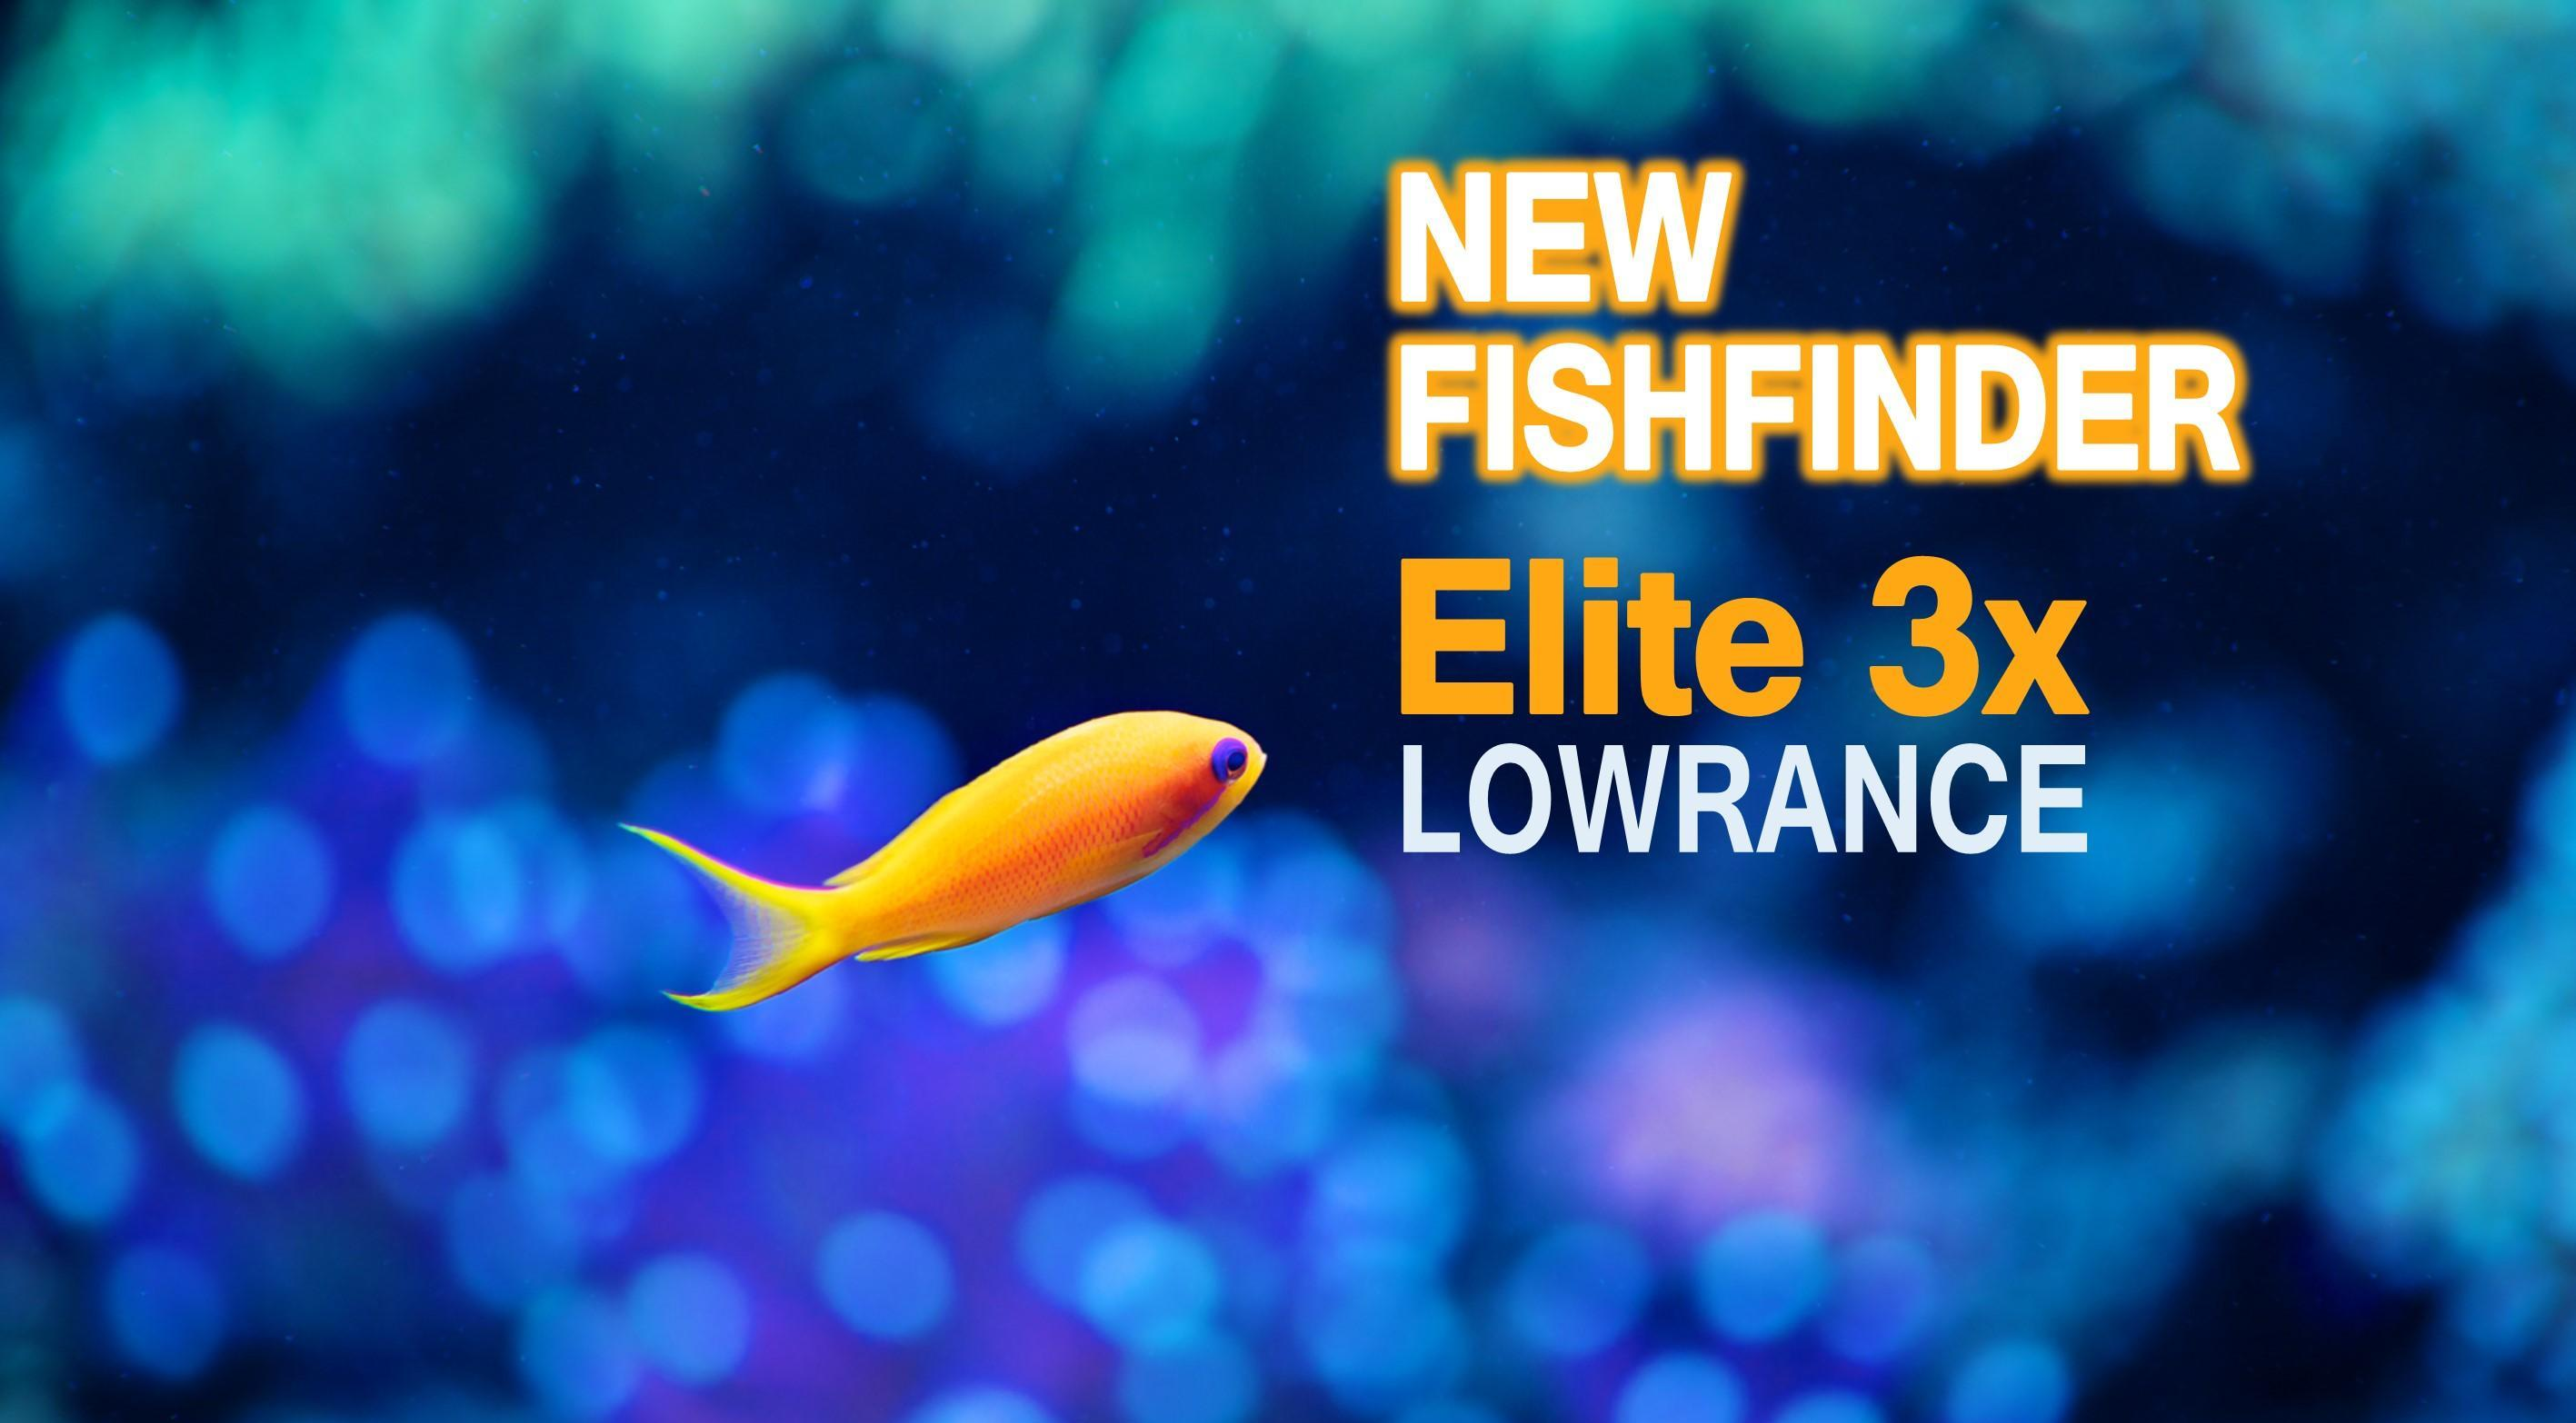 the new ELITE 3x fishfinder lowrance